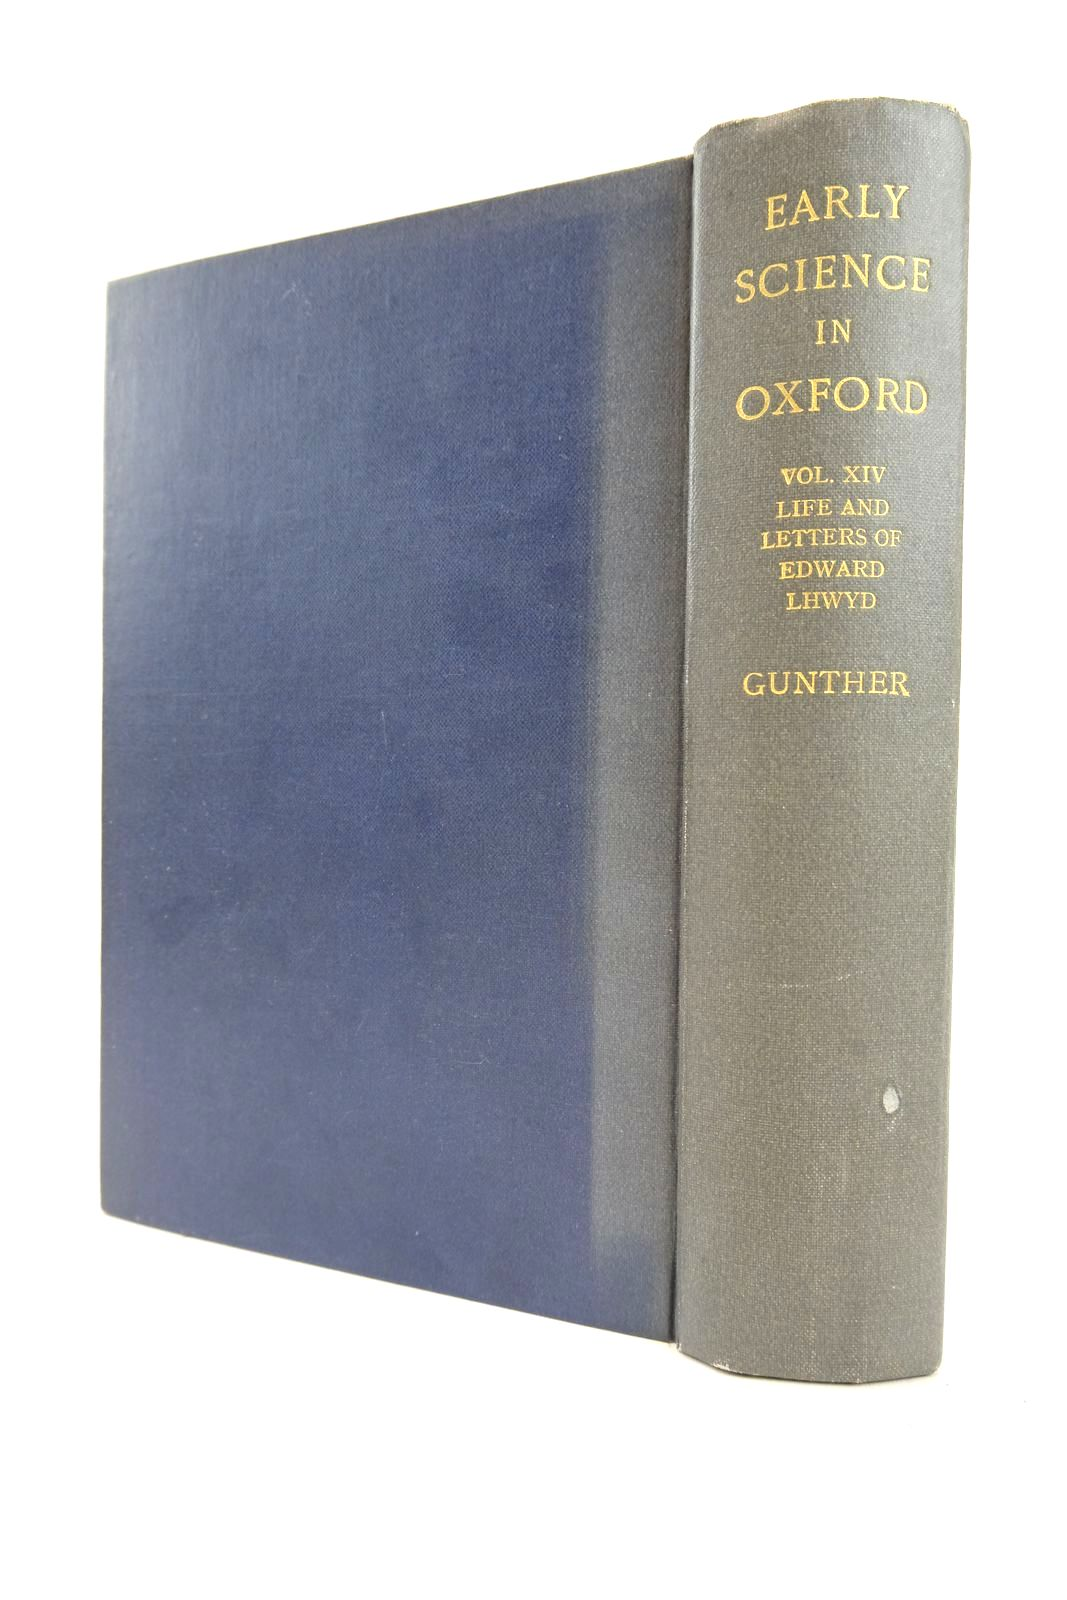 Photo of EARLY SCIENCE IN OXFORD VOL XIV written by Gunther, R.T. published by Oxford University Press (STOCK CODE: 2133149)  for sale by Stella & Rose's Books